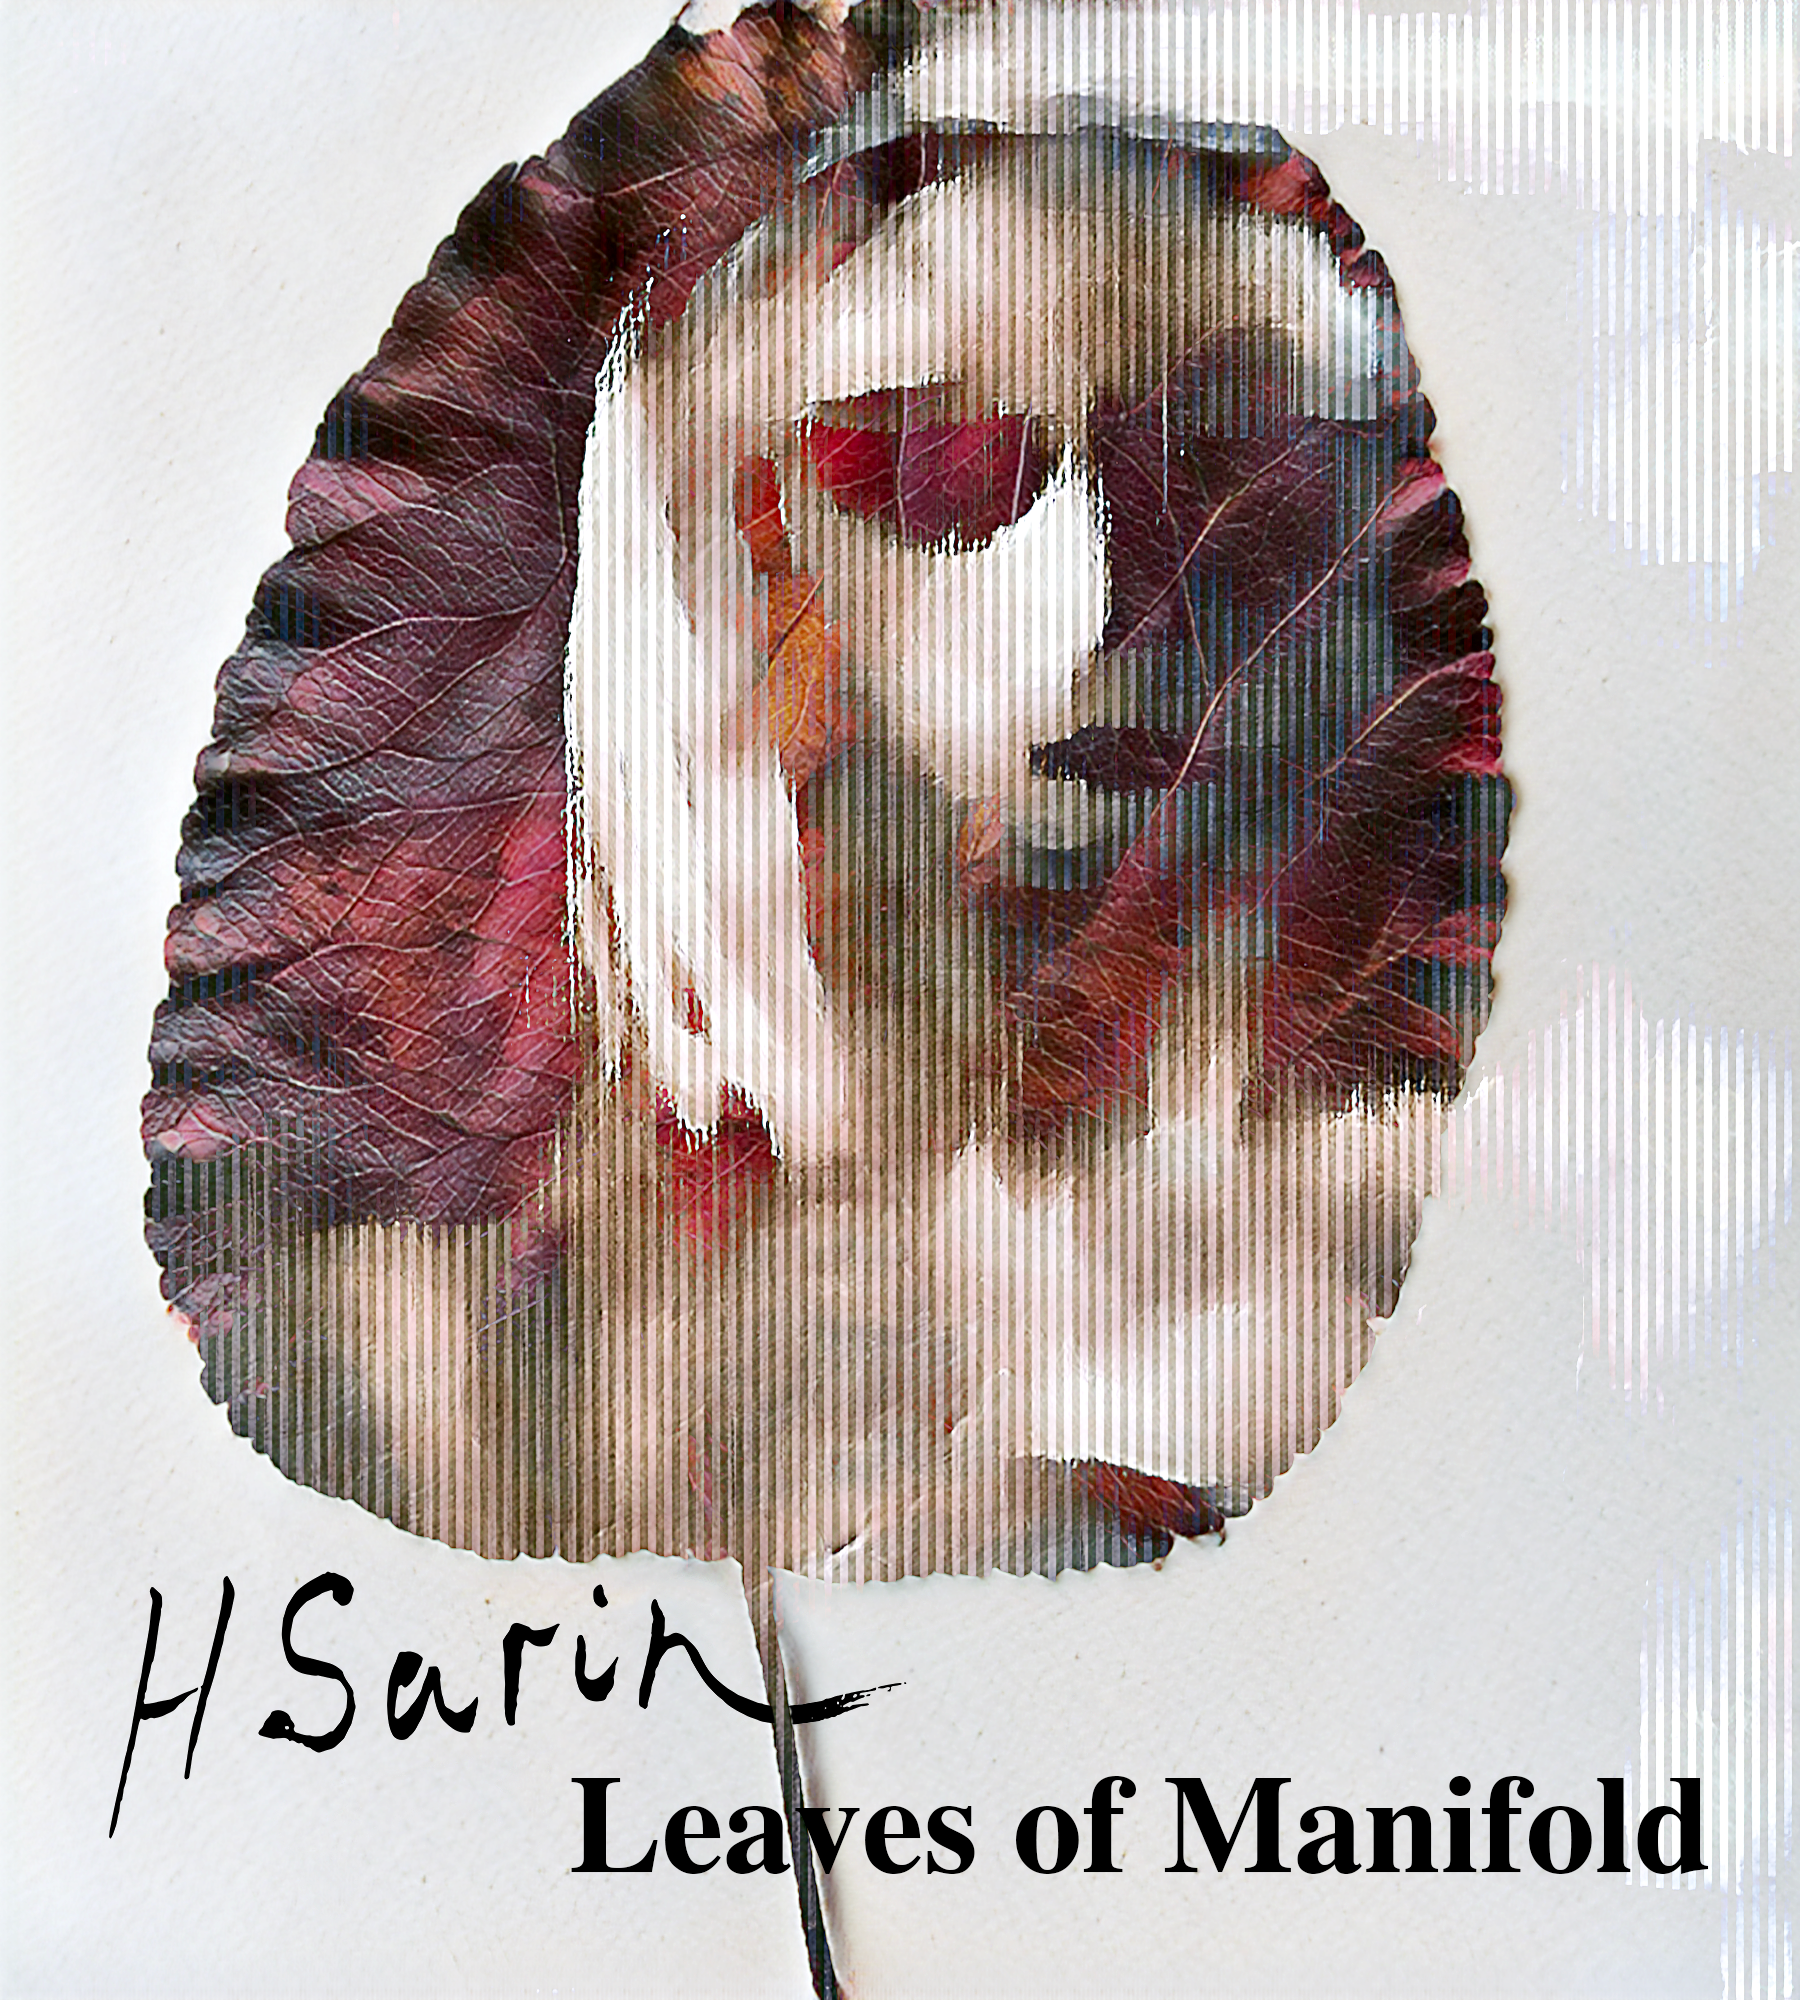 a ghostly image of a woman's face silhouetted by a leaf